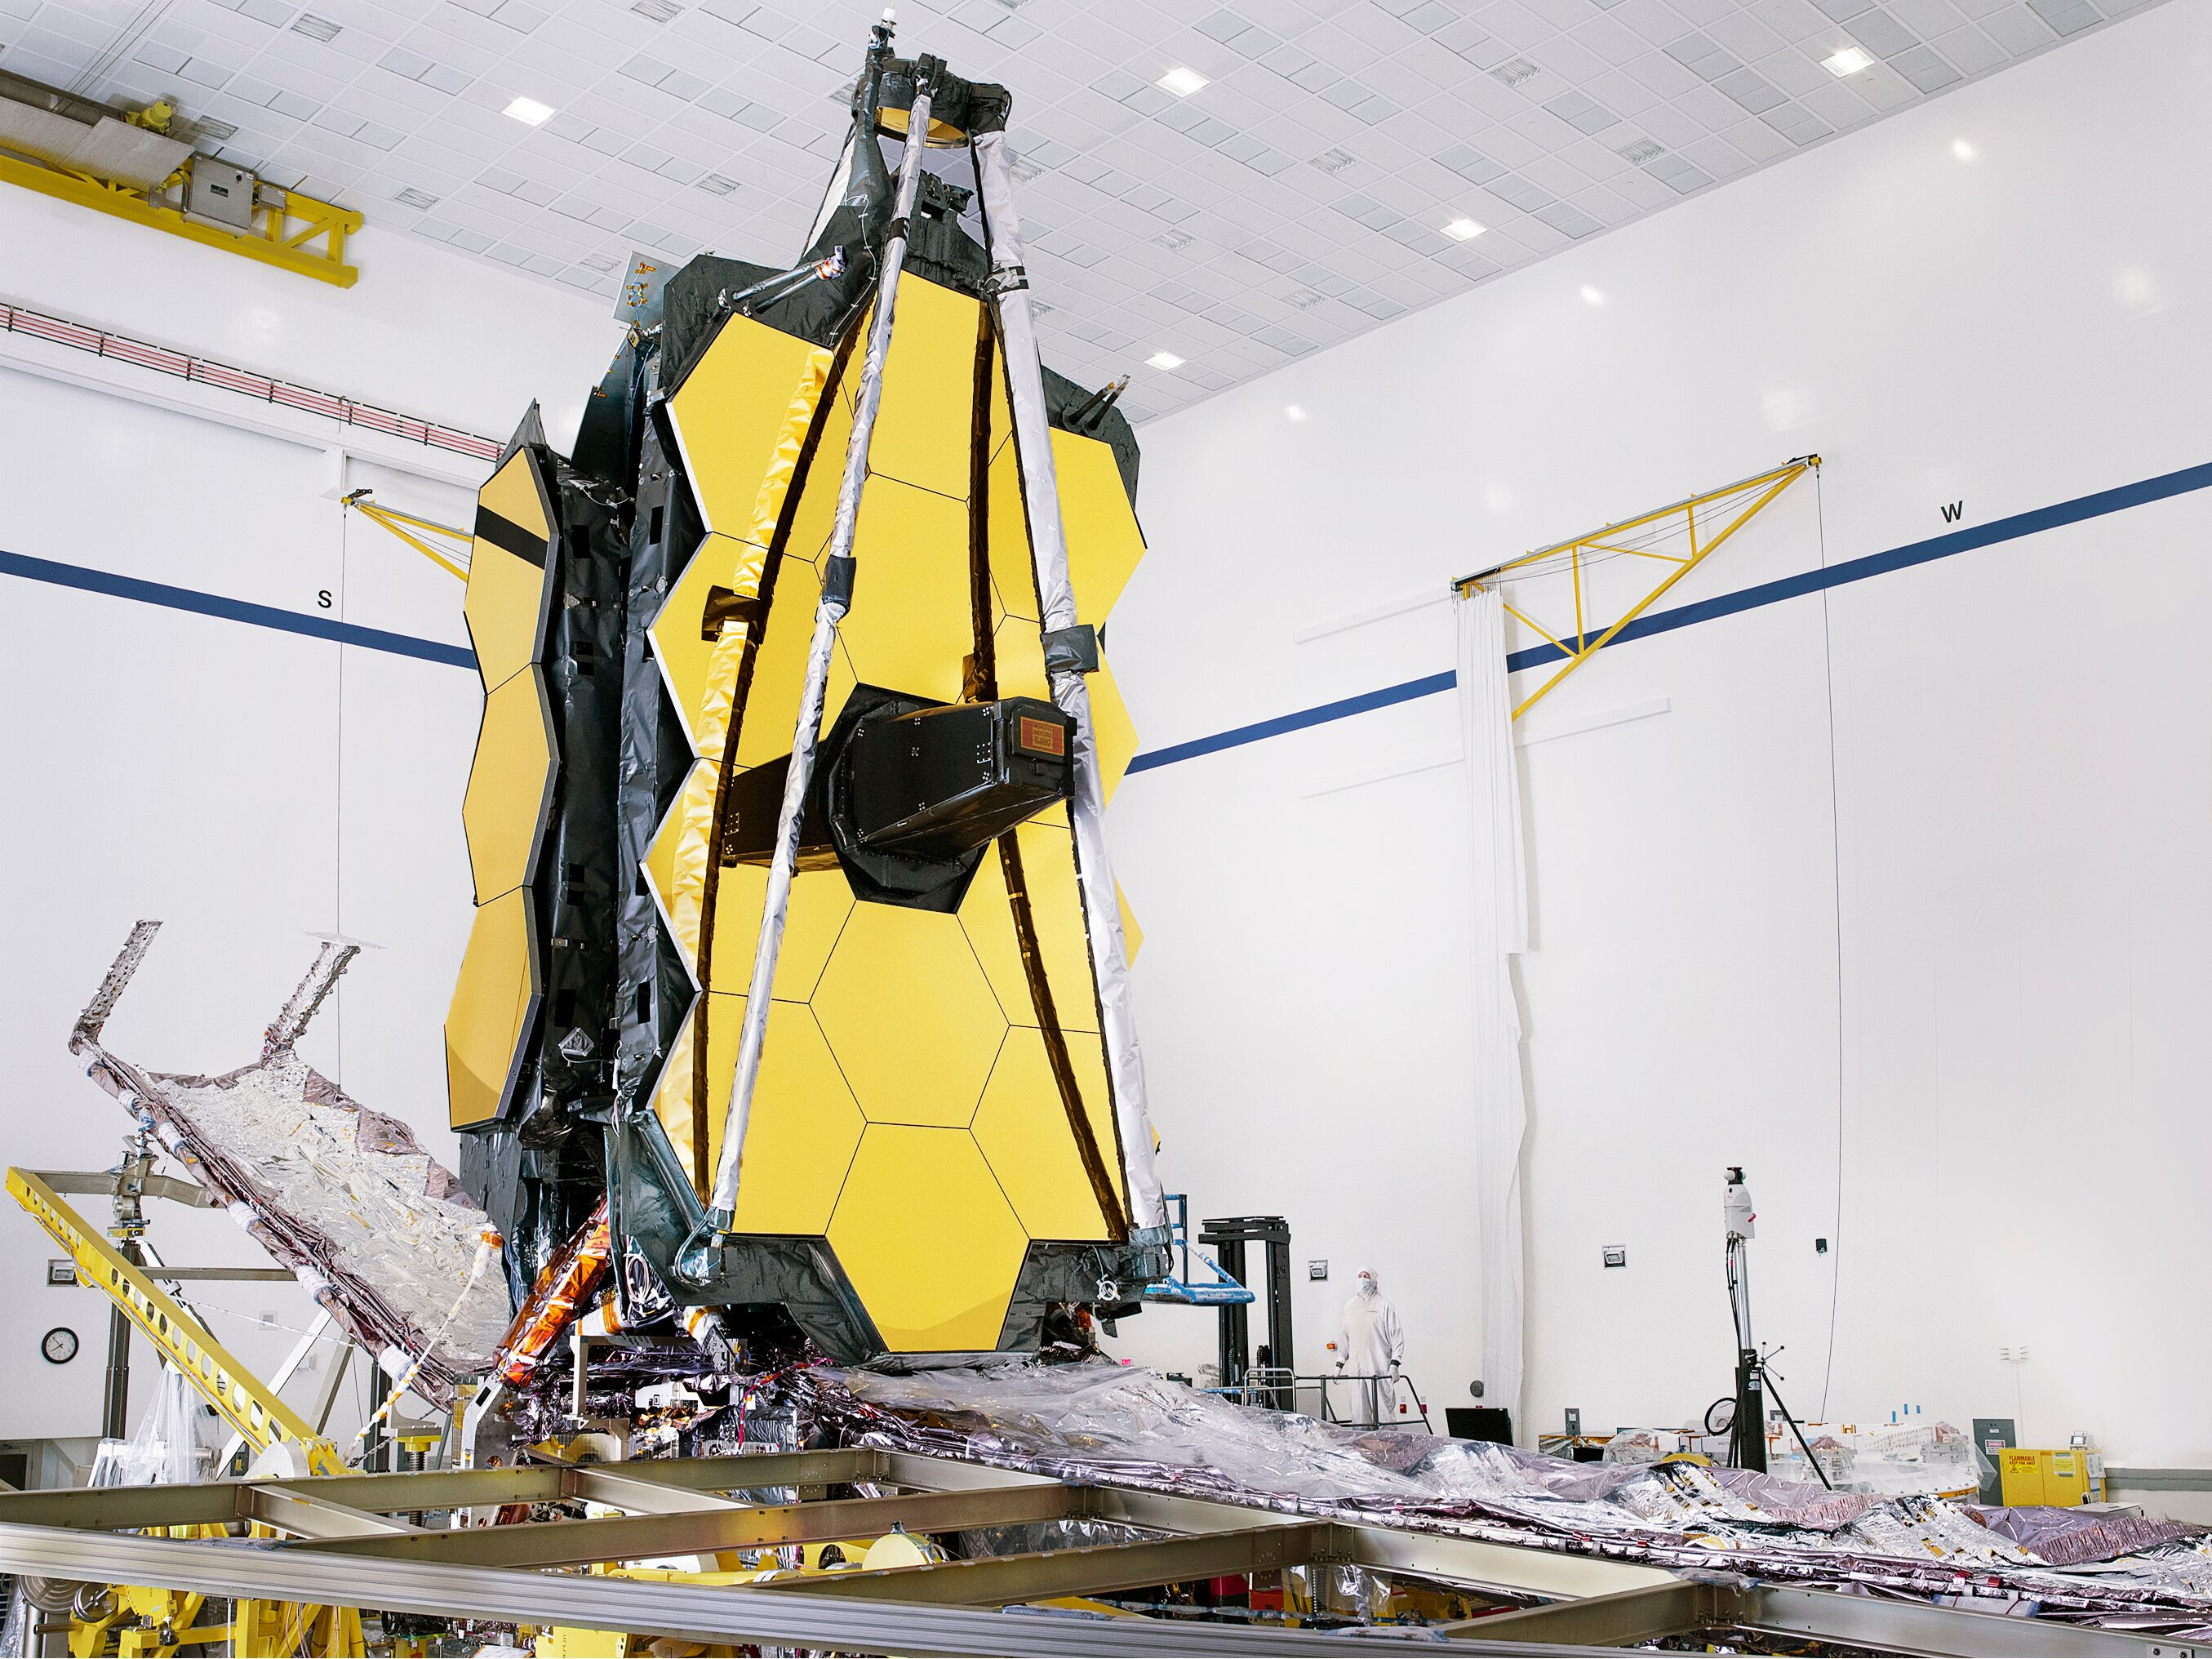 The fully-assembled James Webb Space Telescope in all its glory.